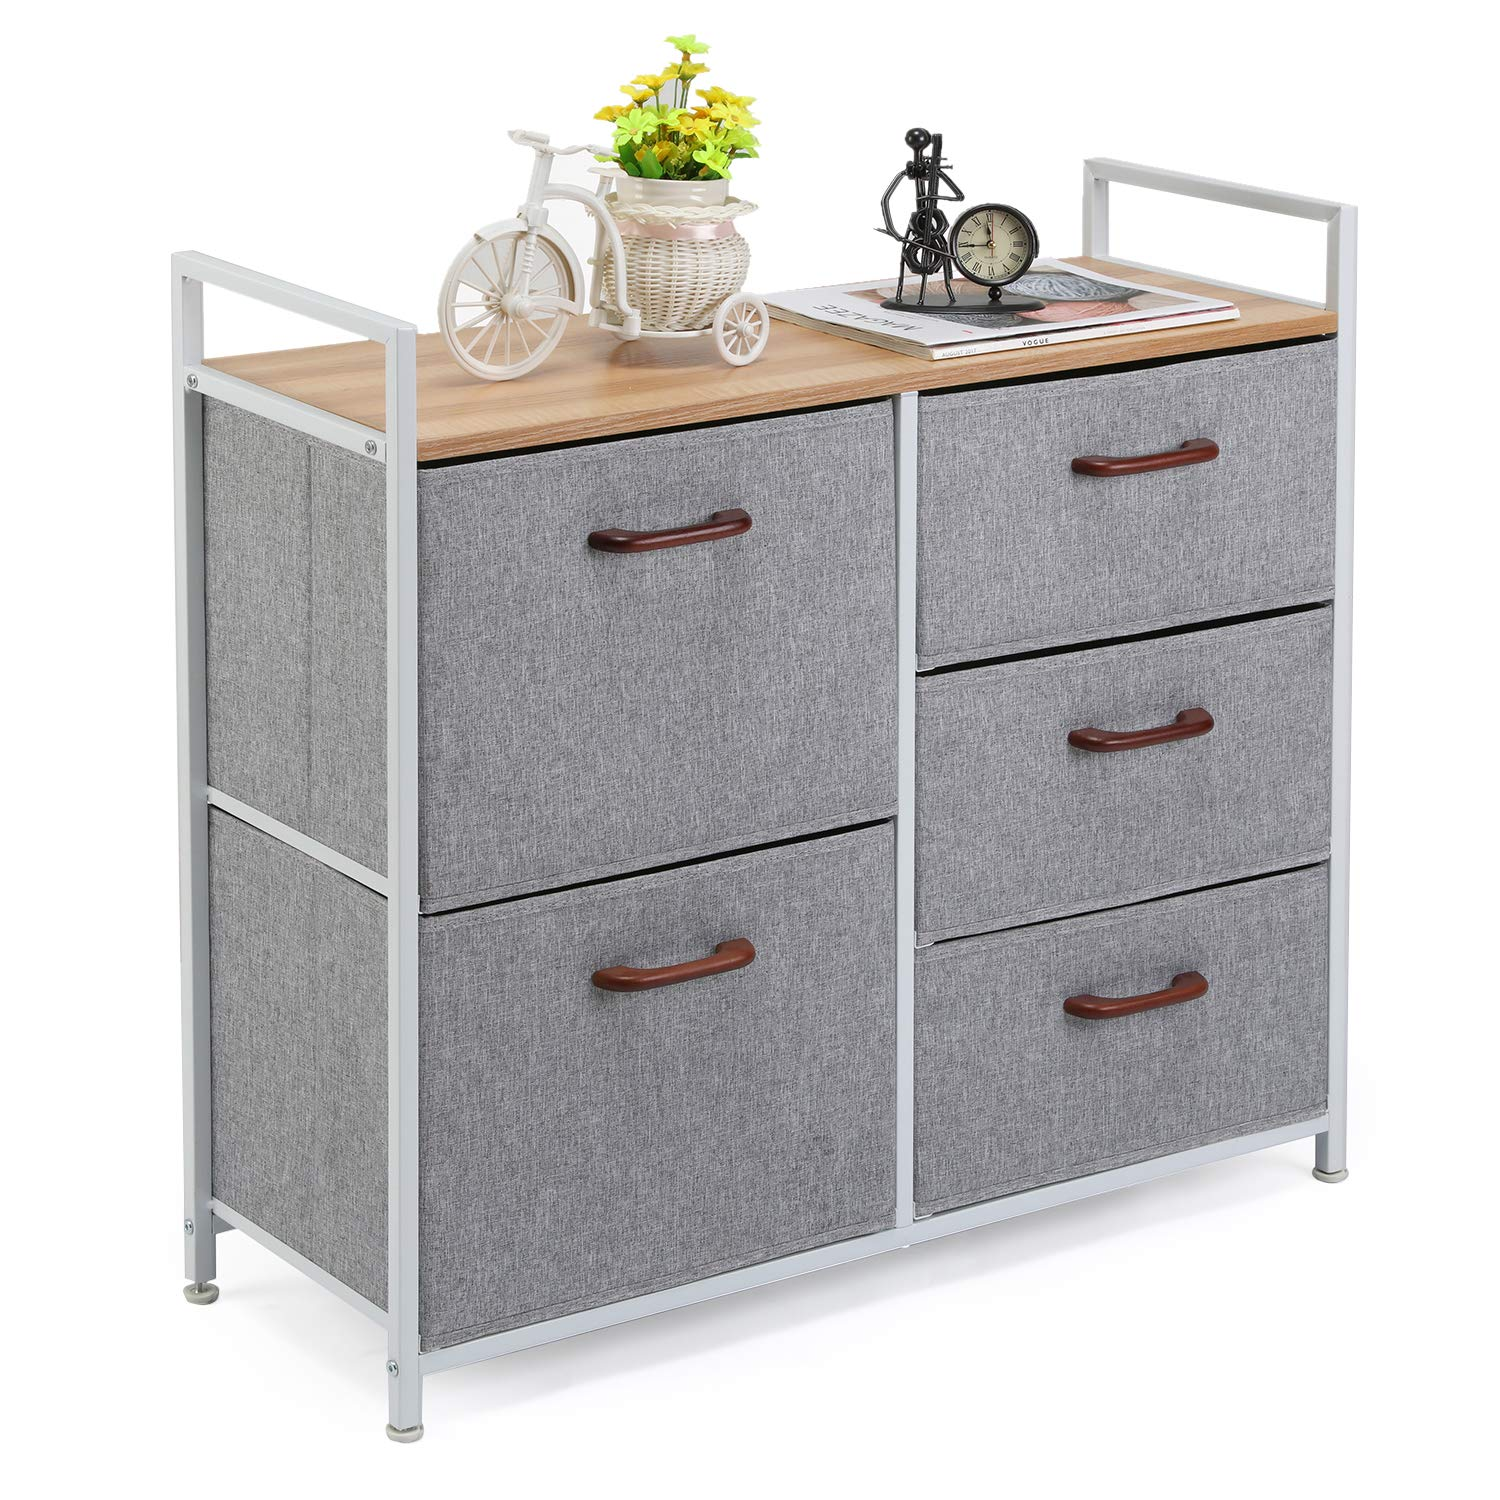 MaidMAX Storage Cube Dresser Home Dresser Storage Tower Constructed by Painted Steel, Wooden Top and 5 Foldable Cloth Storage Cubes, Gray